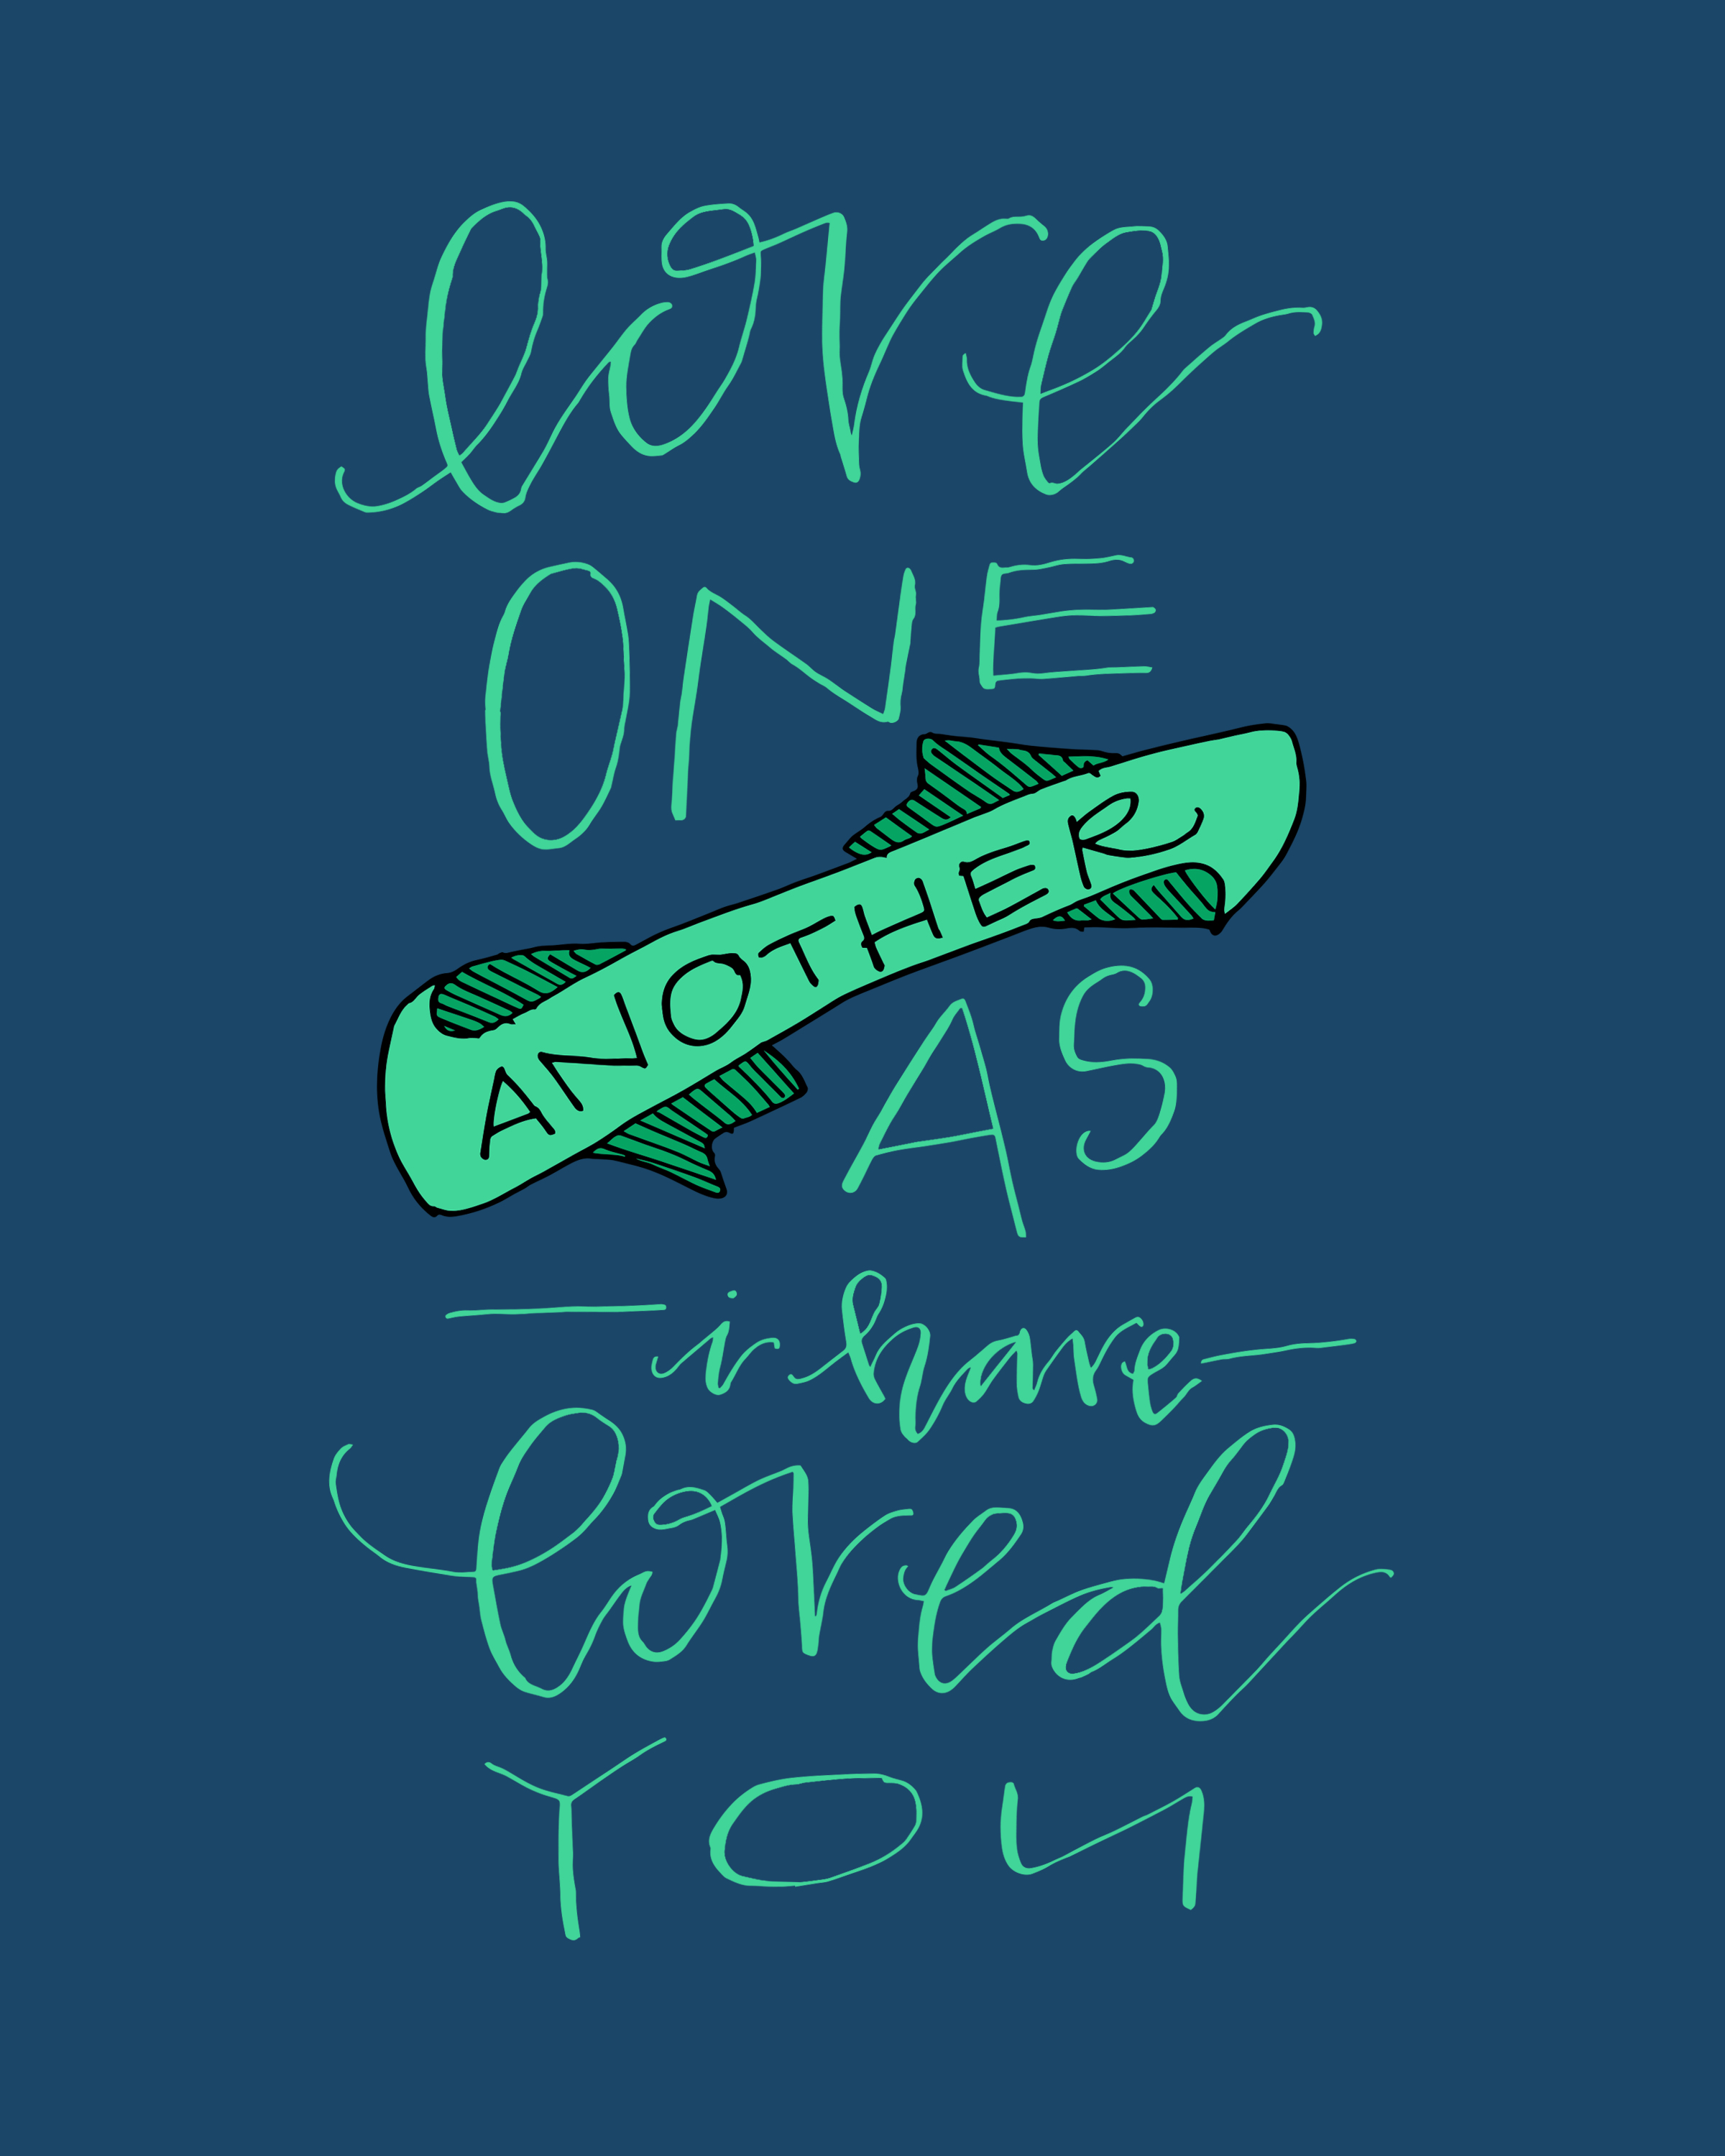 Love One Another: Blue